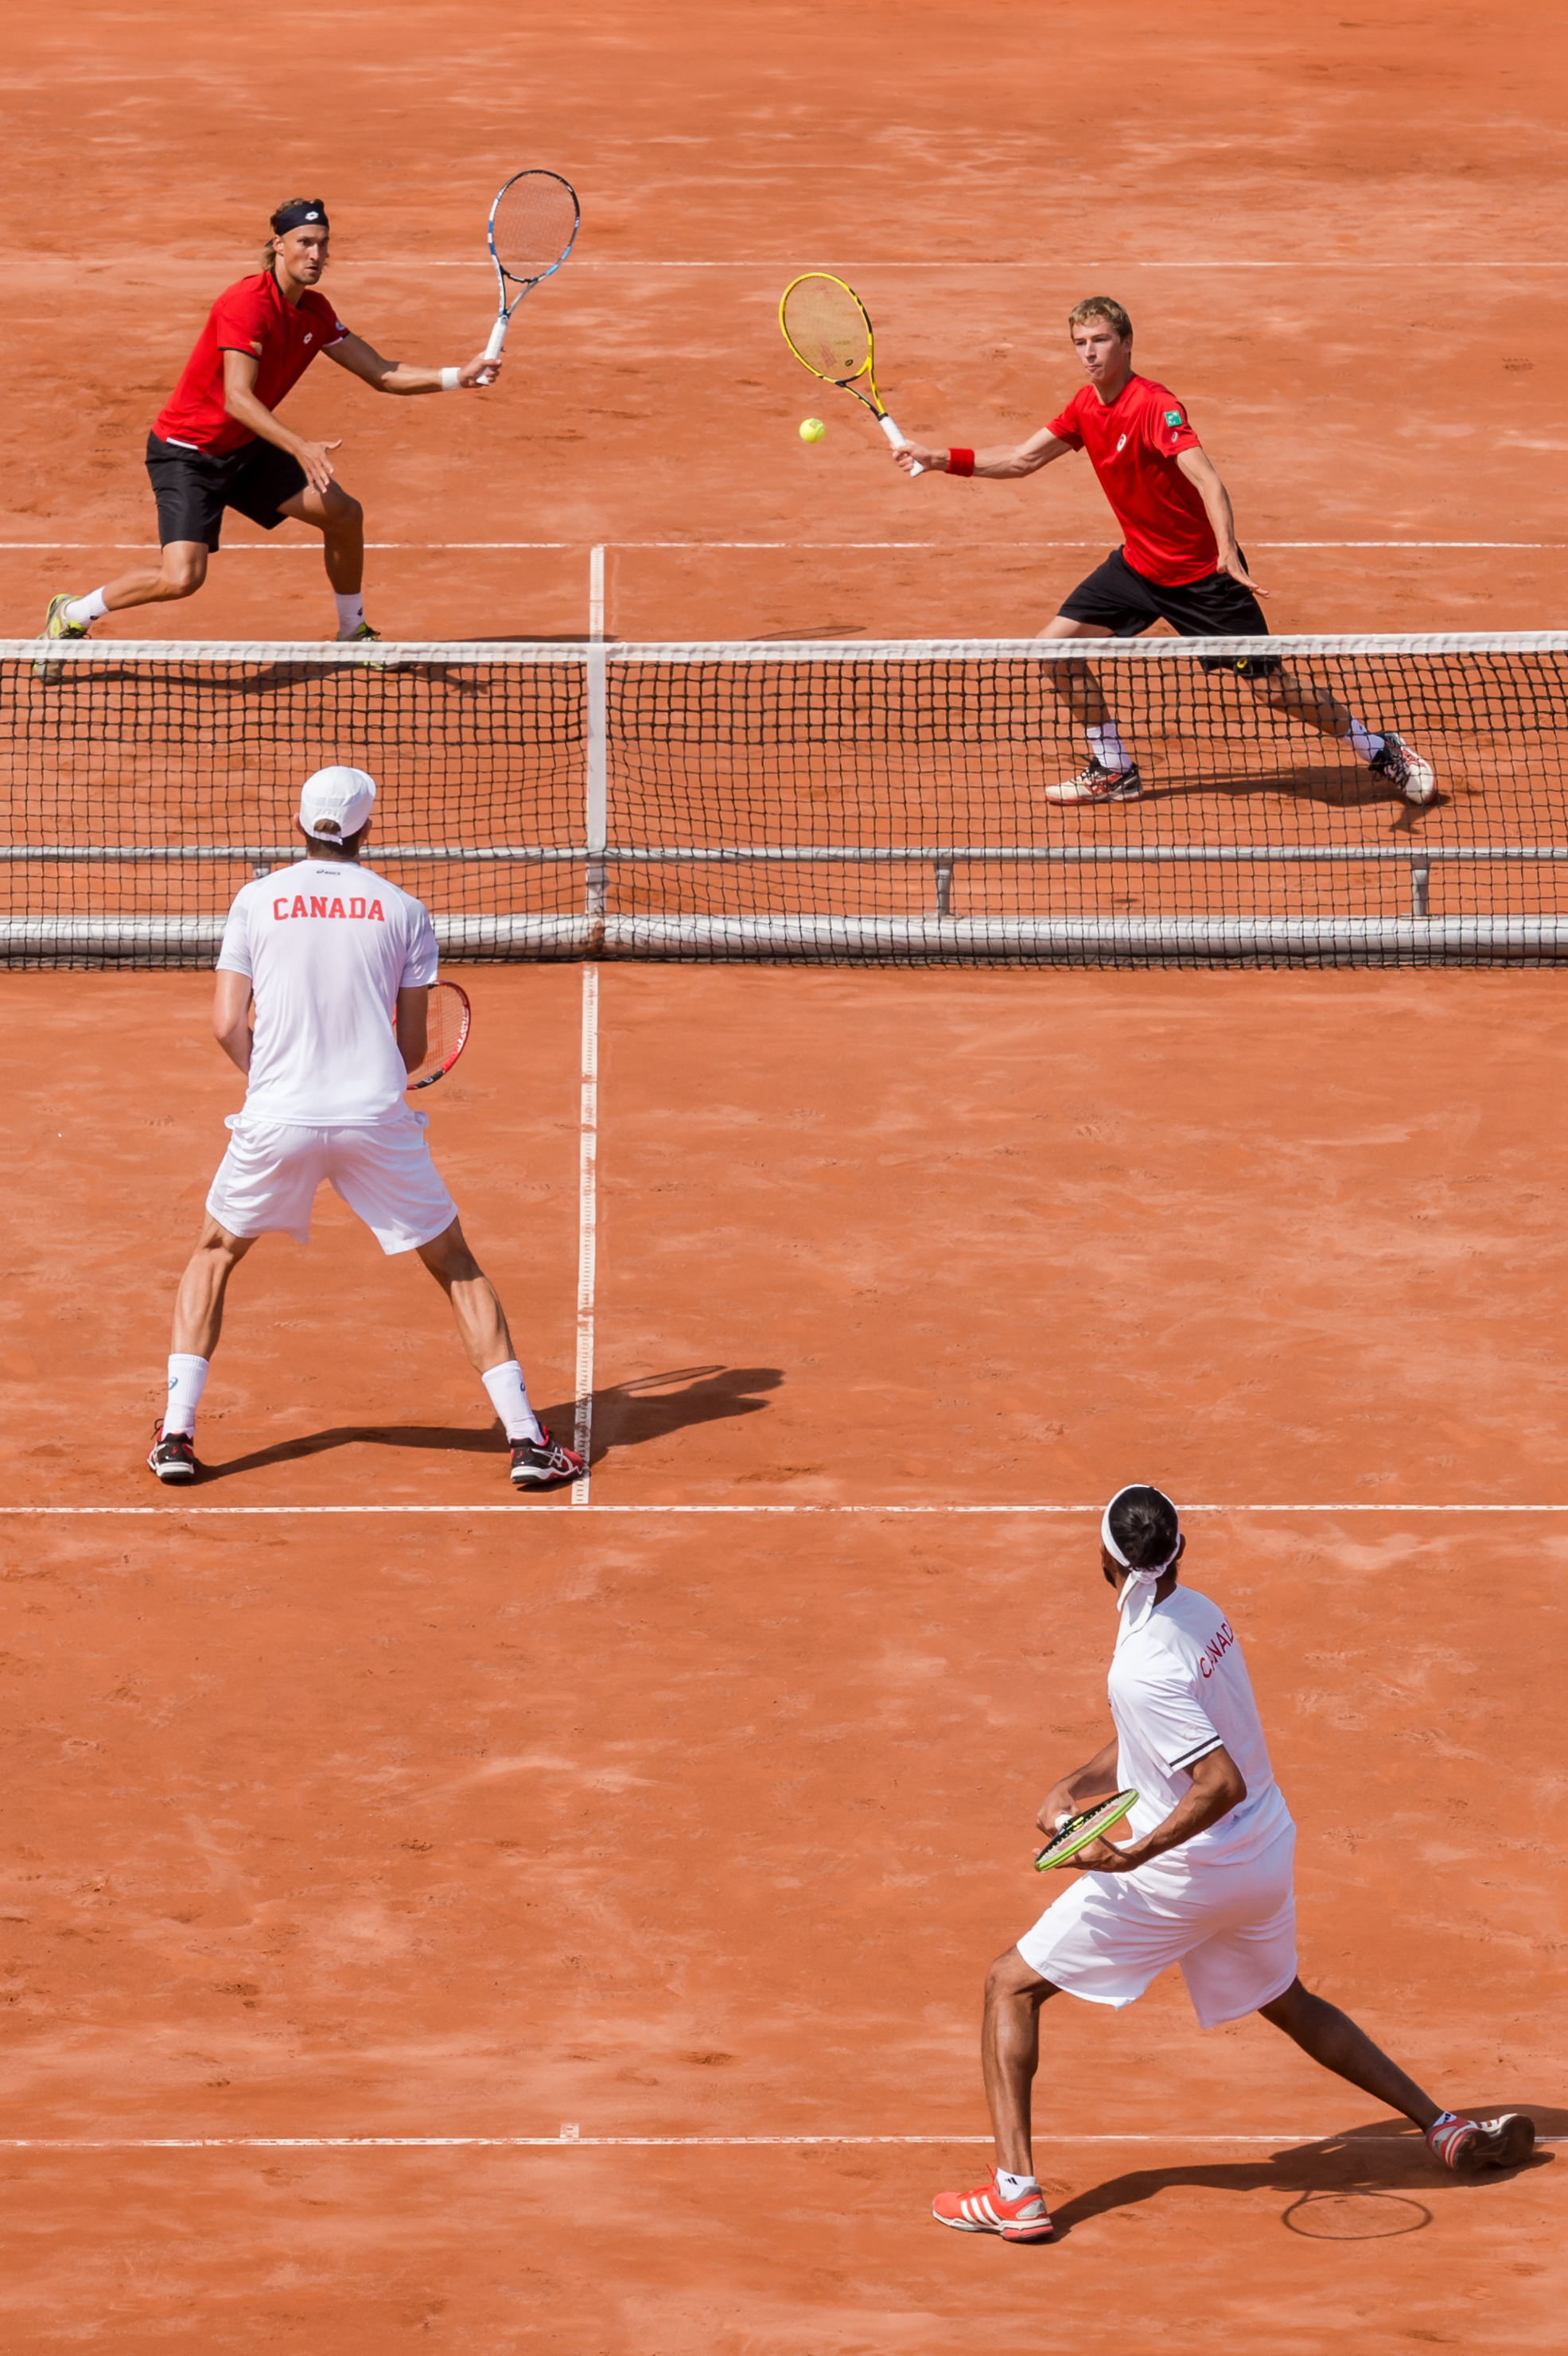 Belgium's Ruben Bemelmans, top left, and Kimmer Coppejans, top right, return the ball to Canada's Daniel Nestor, center, and Adil Shamasdin during the Davis Cup World Group quarterfinal match between Belgium and Canada, in Middelkerke, Belgium, on Saturda